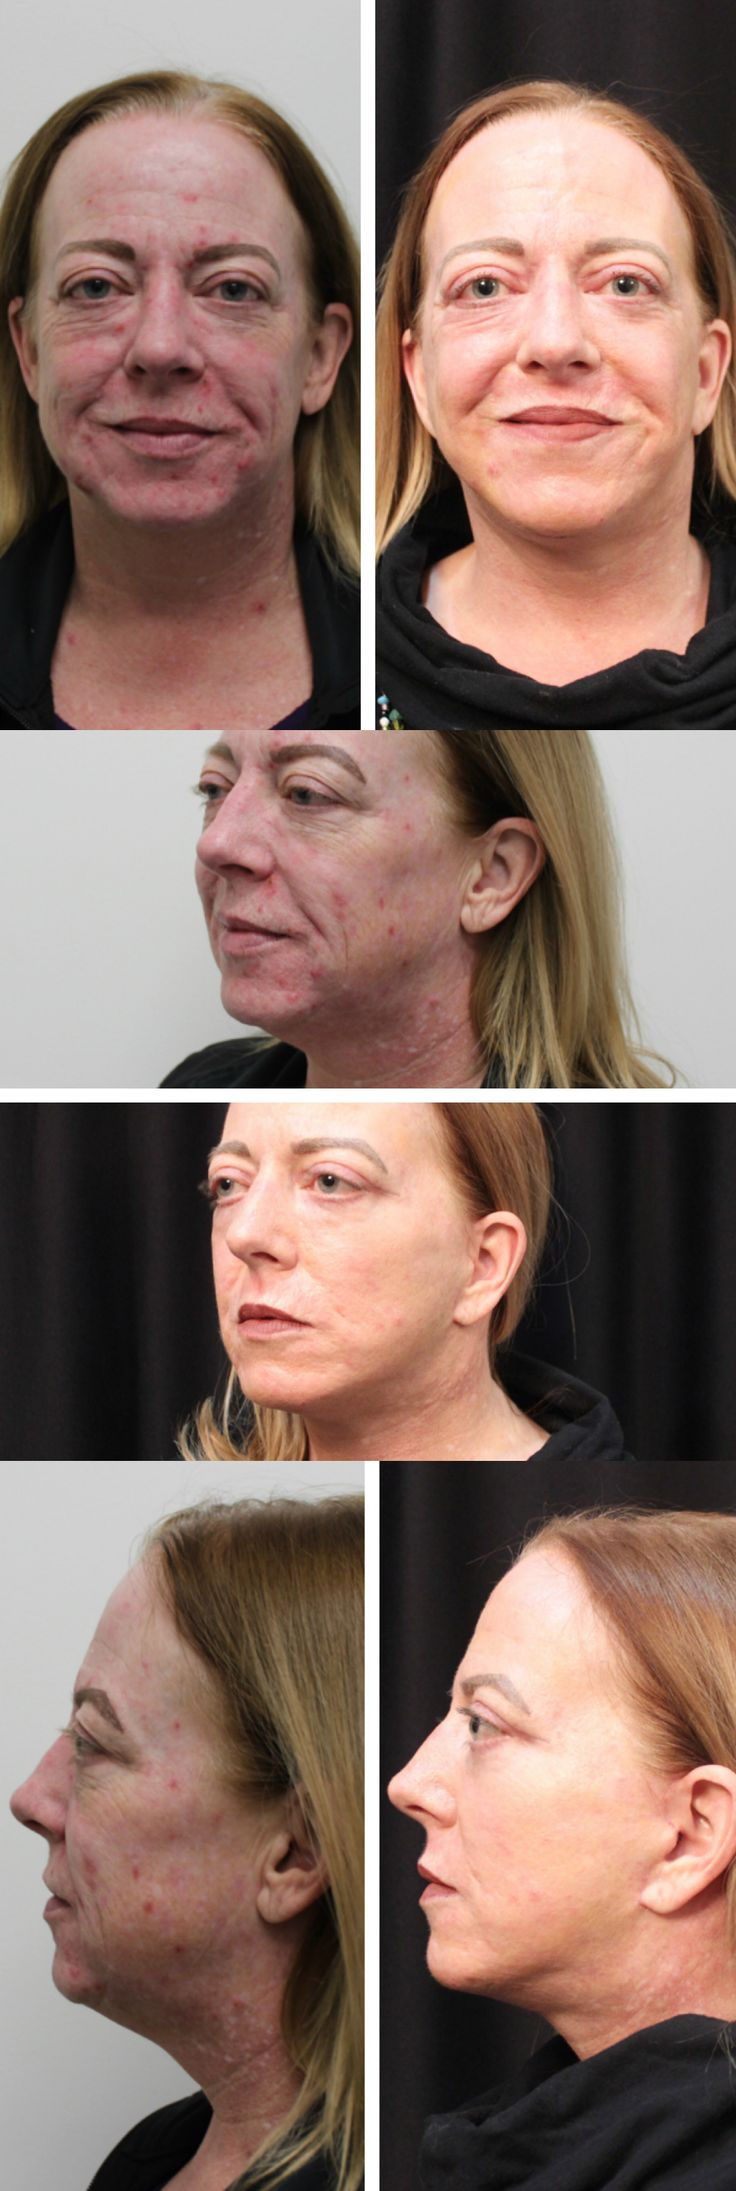 One of our patients who had four different procedures: face lift, co2 lazer, upper and lower eyelid lifts. Amazing results!! #plasticsurgery #cosmeticsurgery #slc #utah #medicalspa #facelift #co2laser #eyelidsurgery #amazing #work #look #Revivology